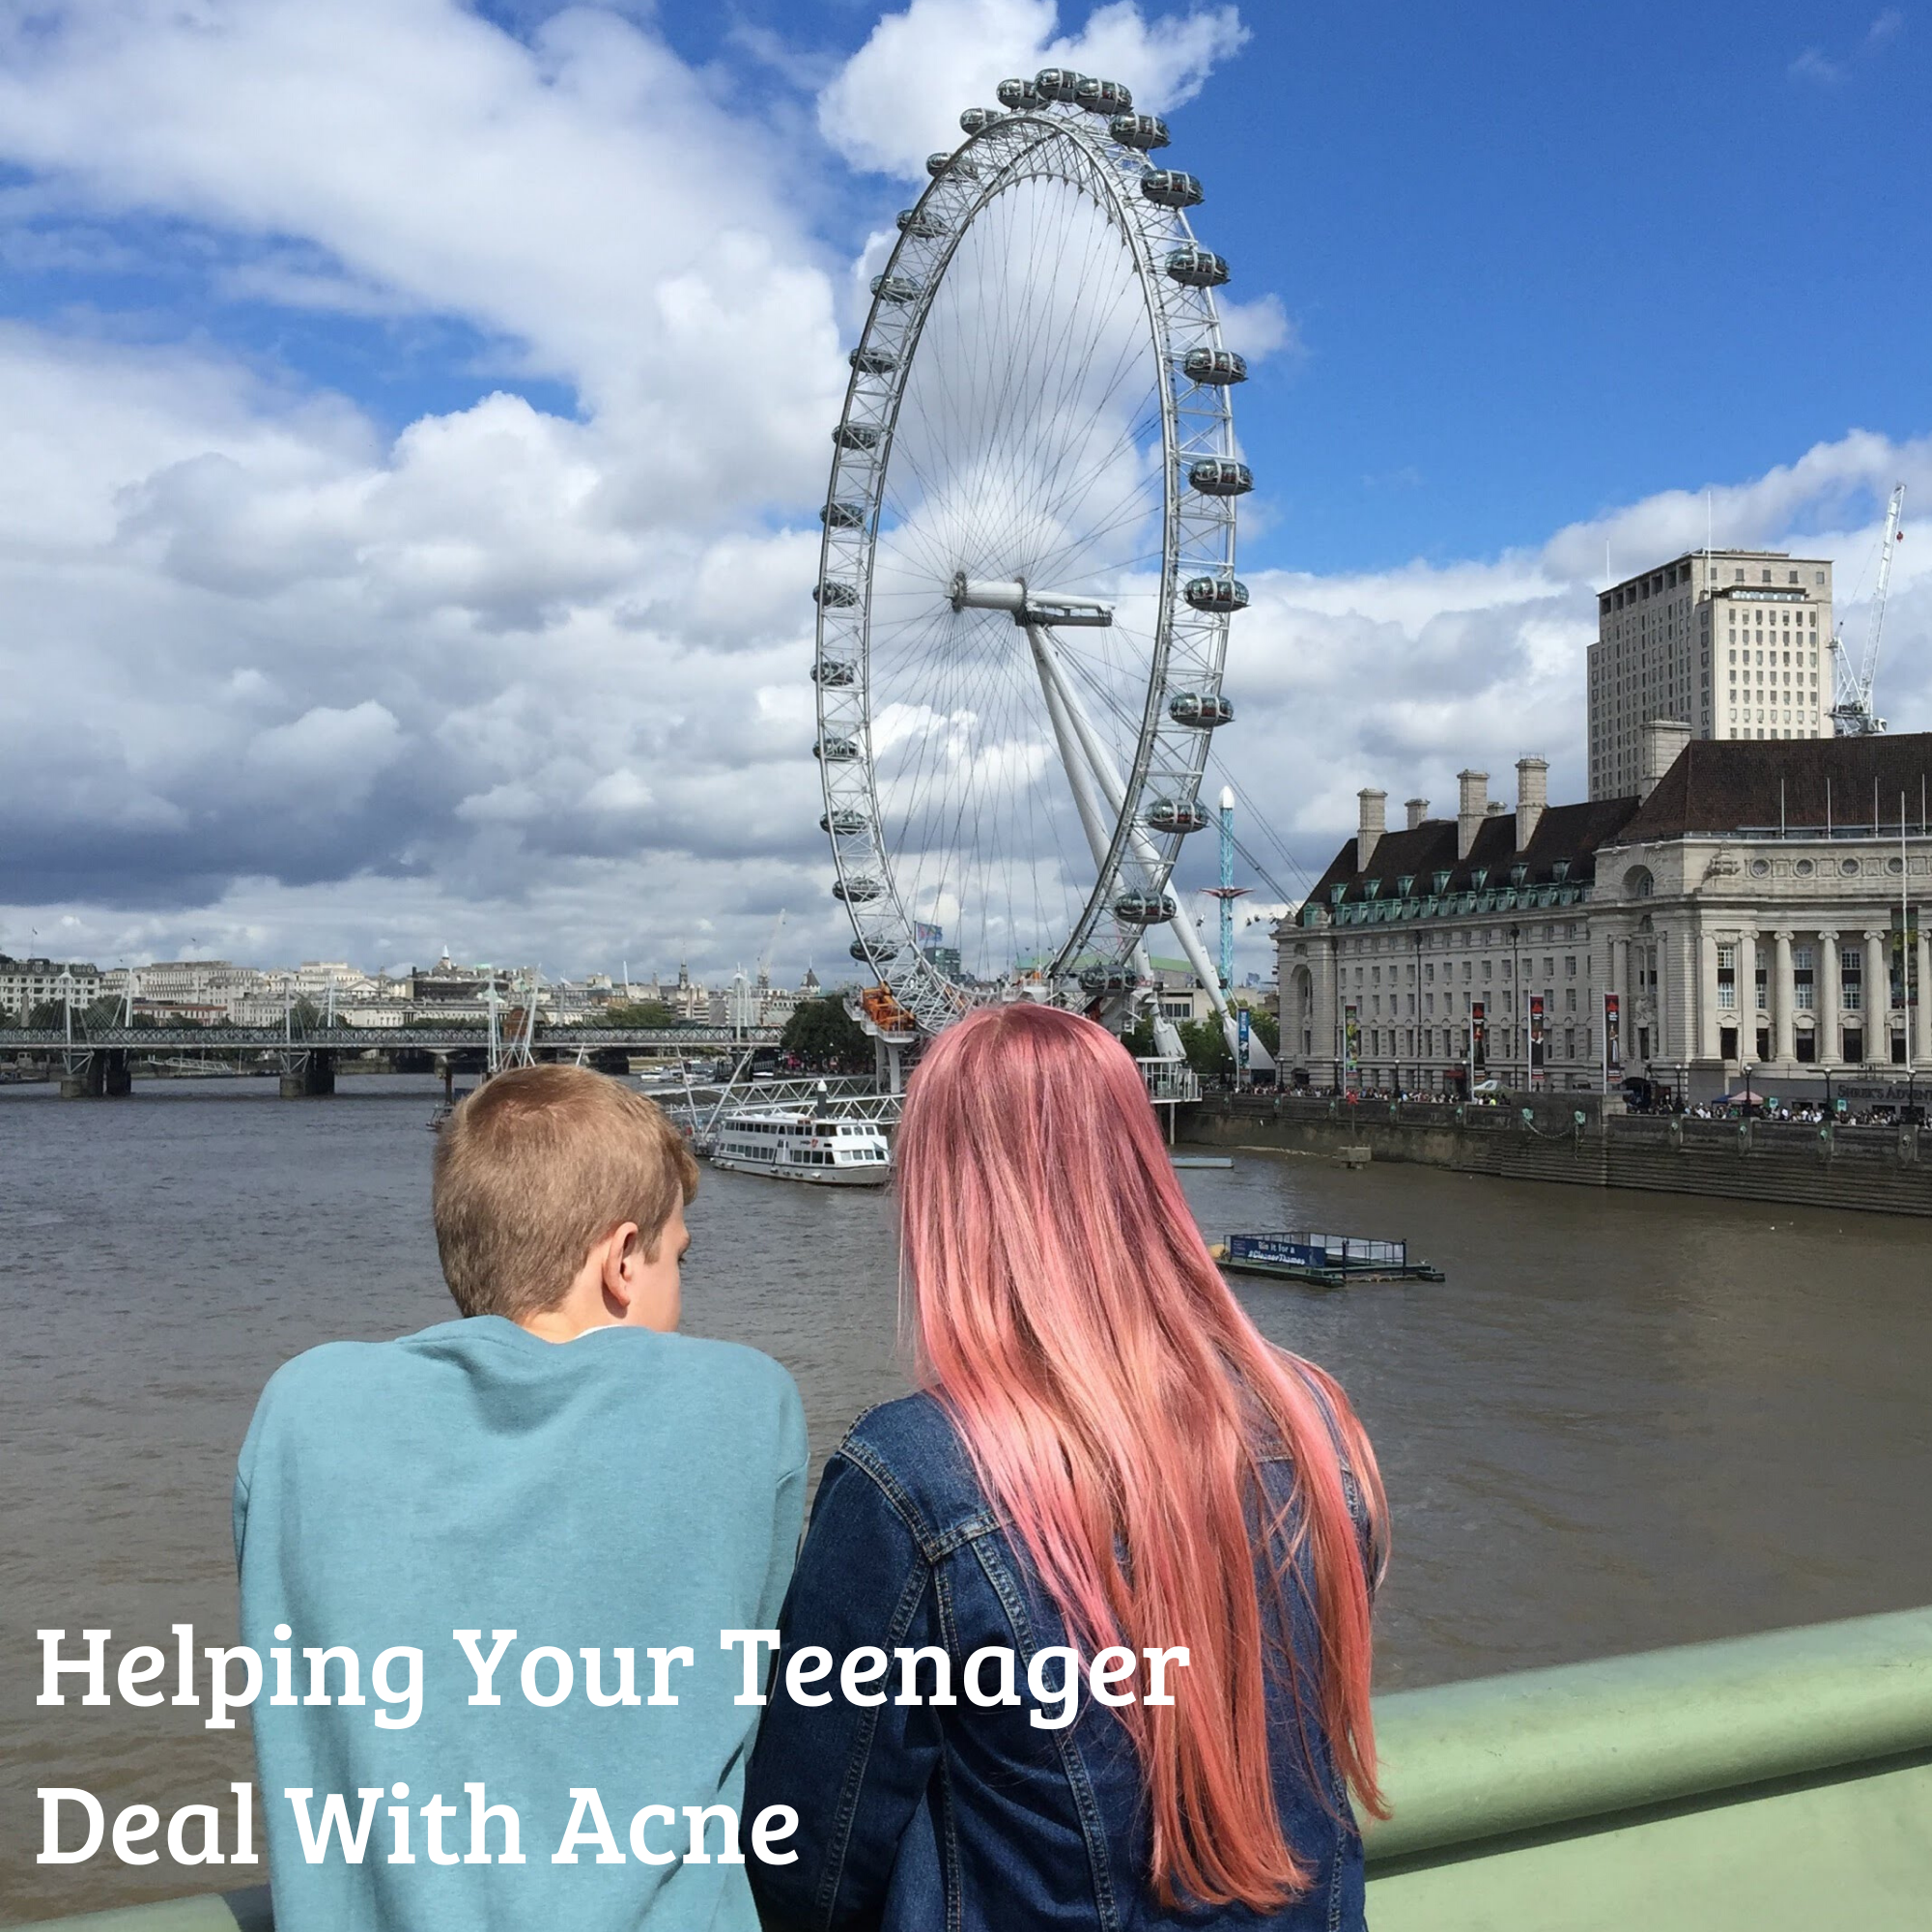 Helping Your Teenager Deal With Acne